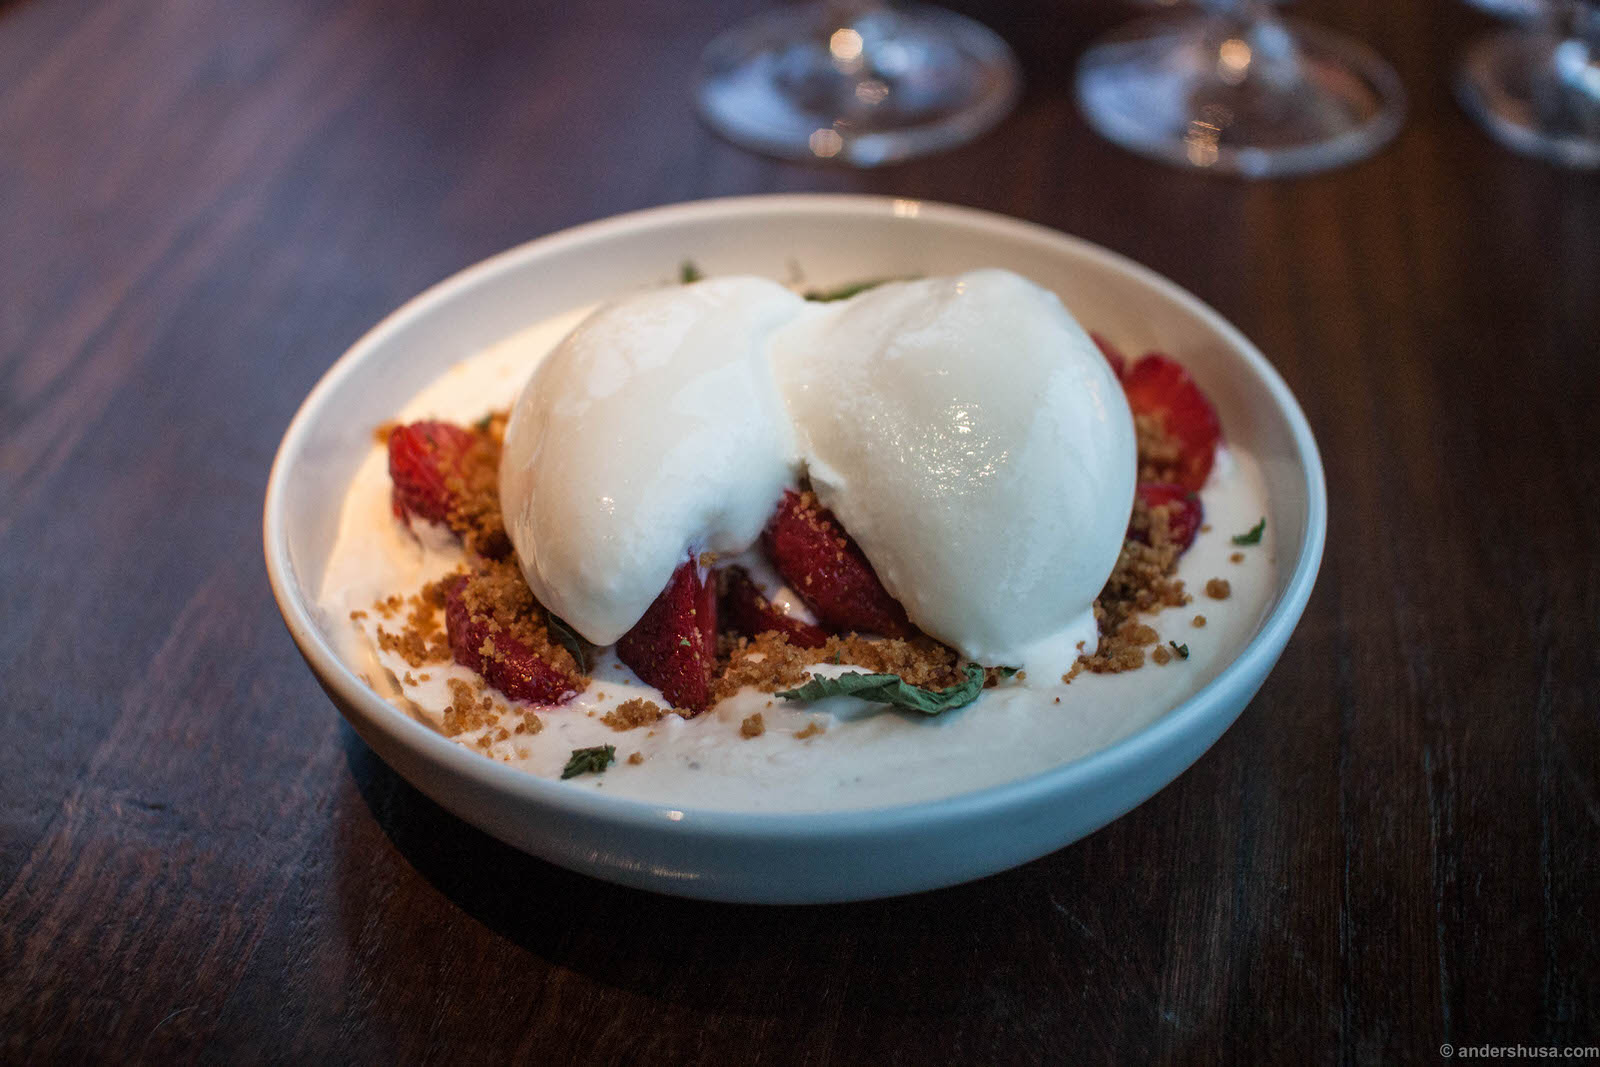 Norwegian strawberries with almond and rye crumble and a sorbet of fresh cheese